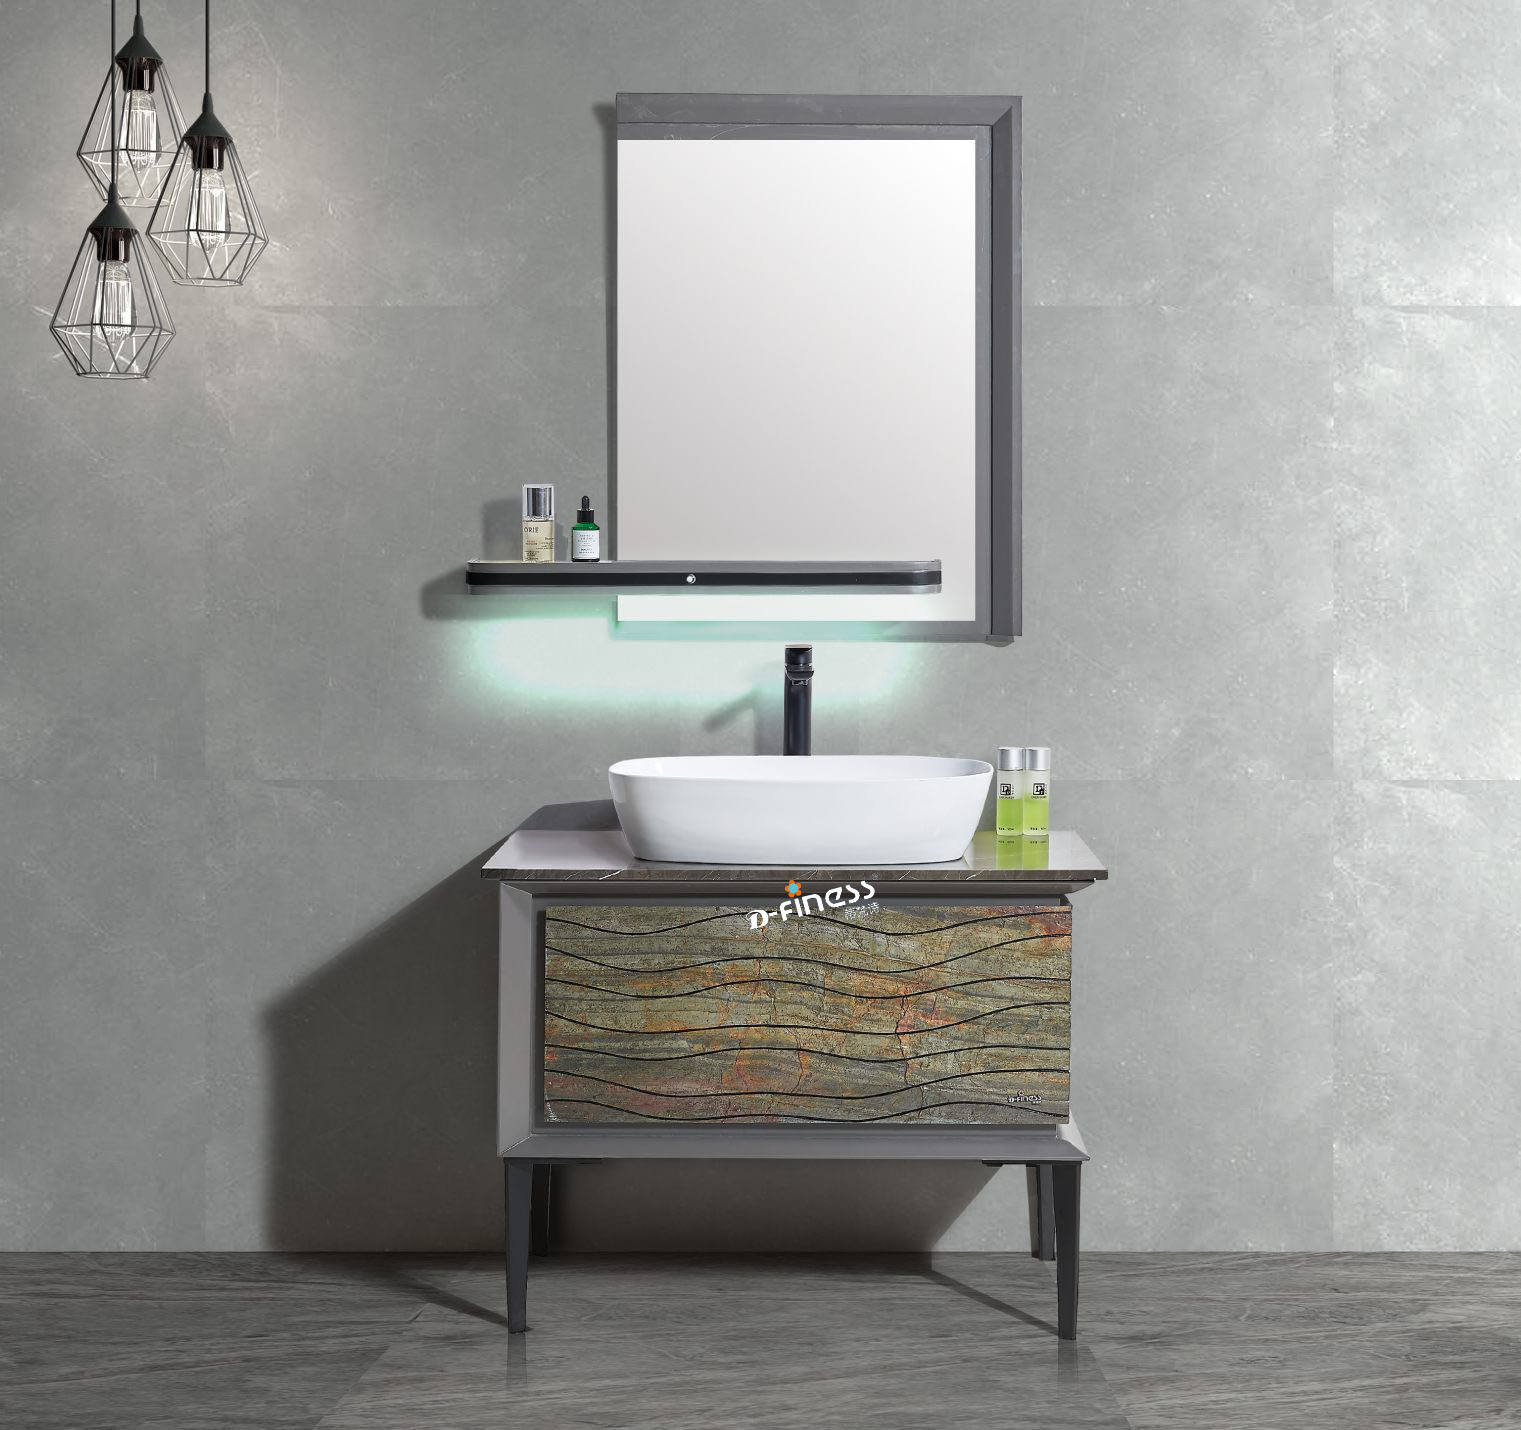 China Bathroom Vanity Bath China Bathroom Vanity Bath Manufacturers And Suppliers On Alibaba Com